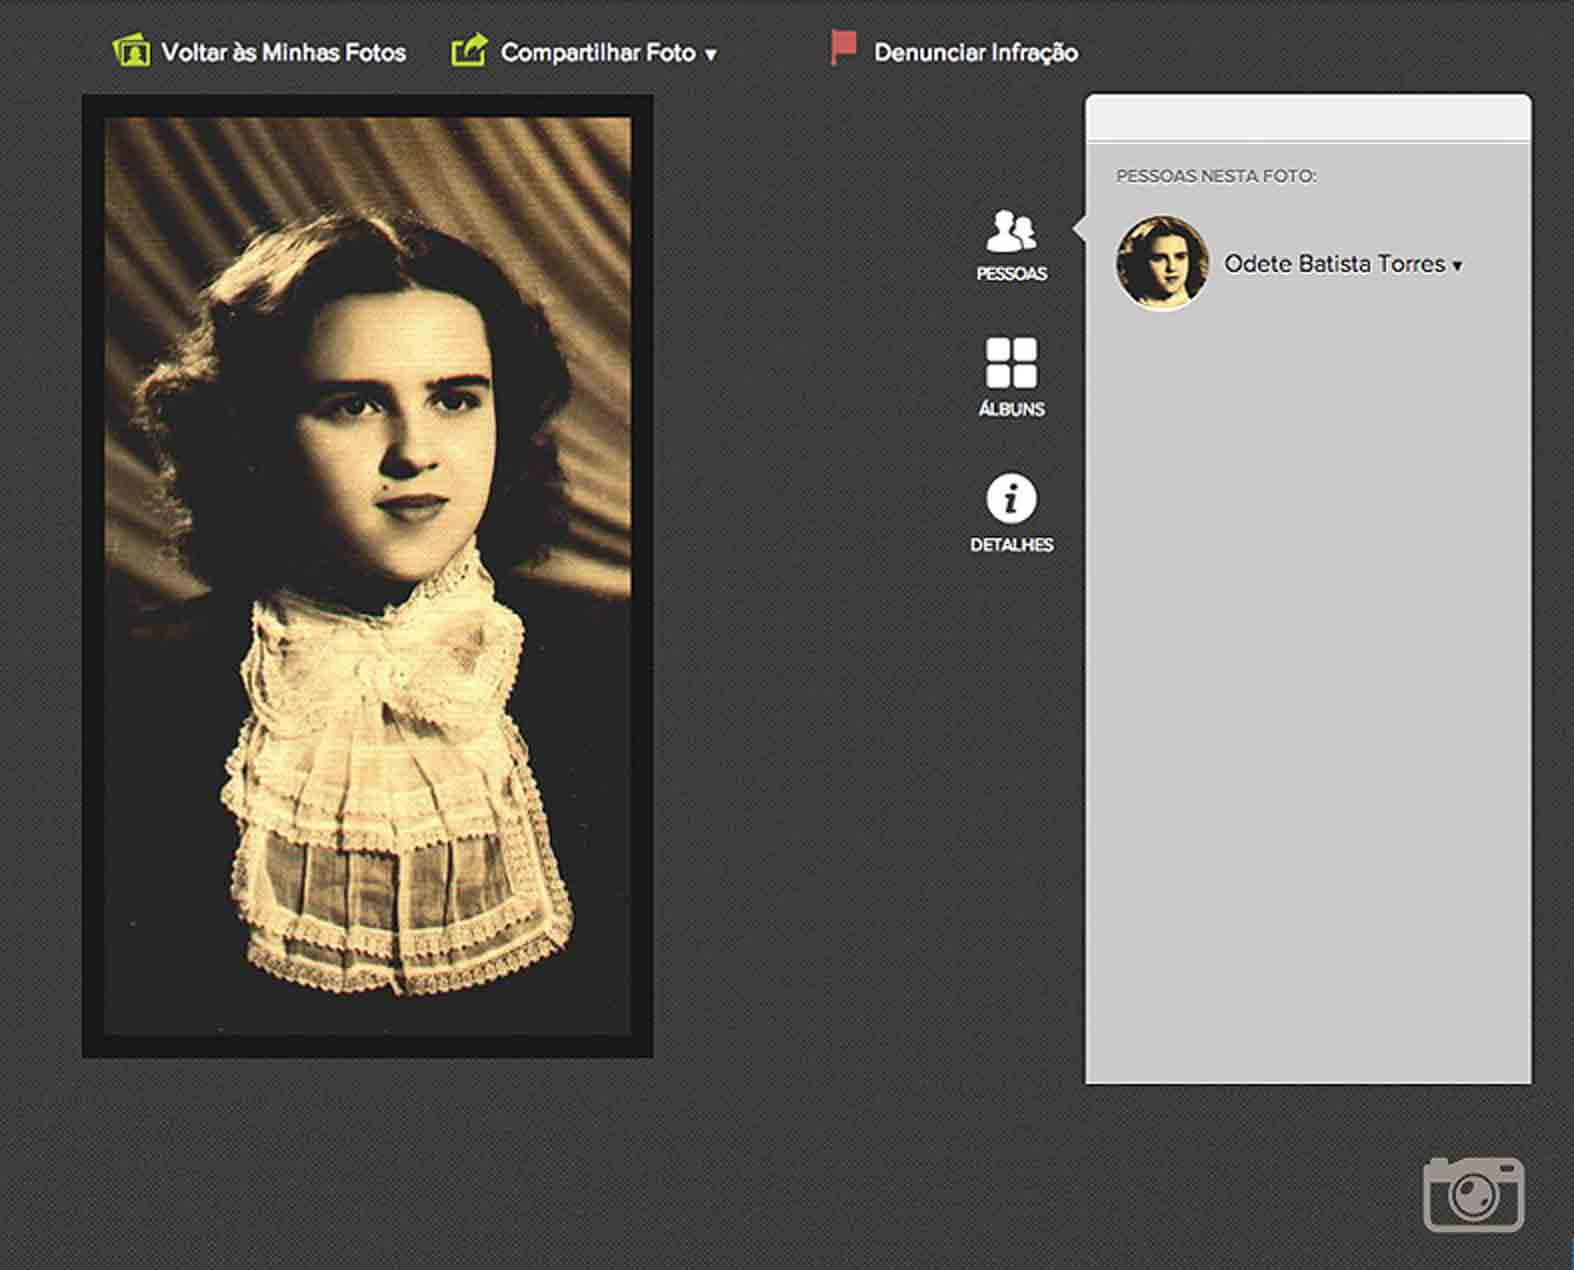 Recurso de Fotos e Histórias do FamilySearch